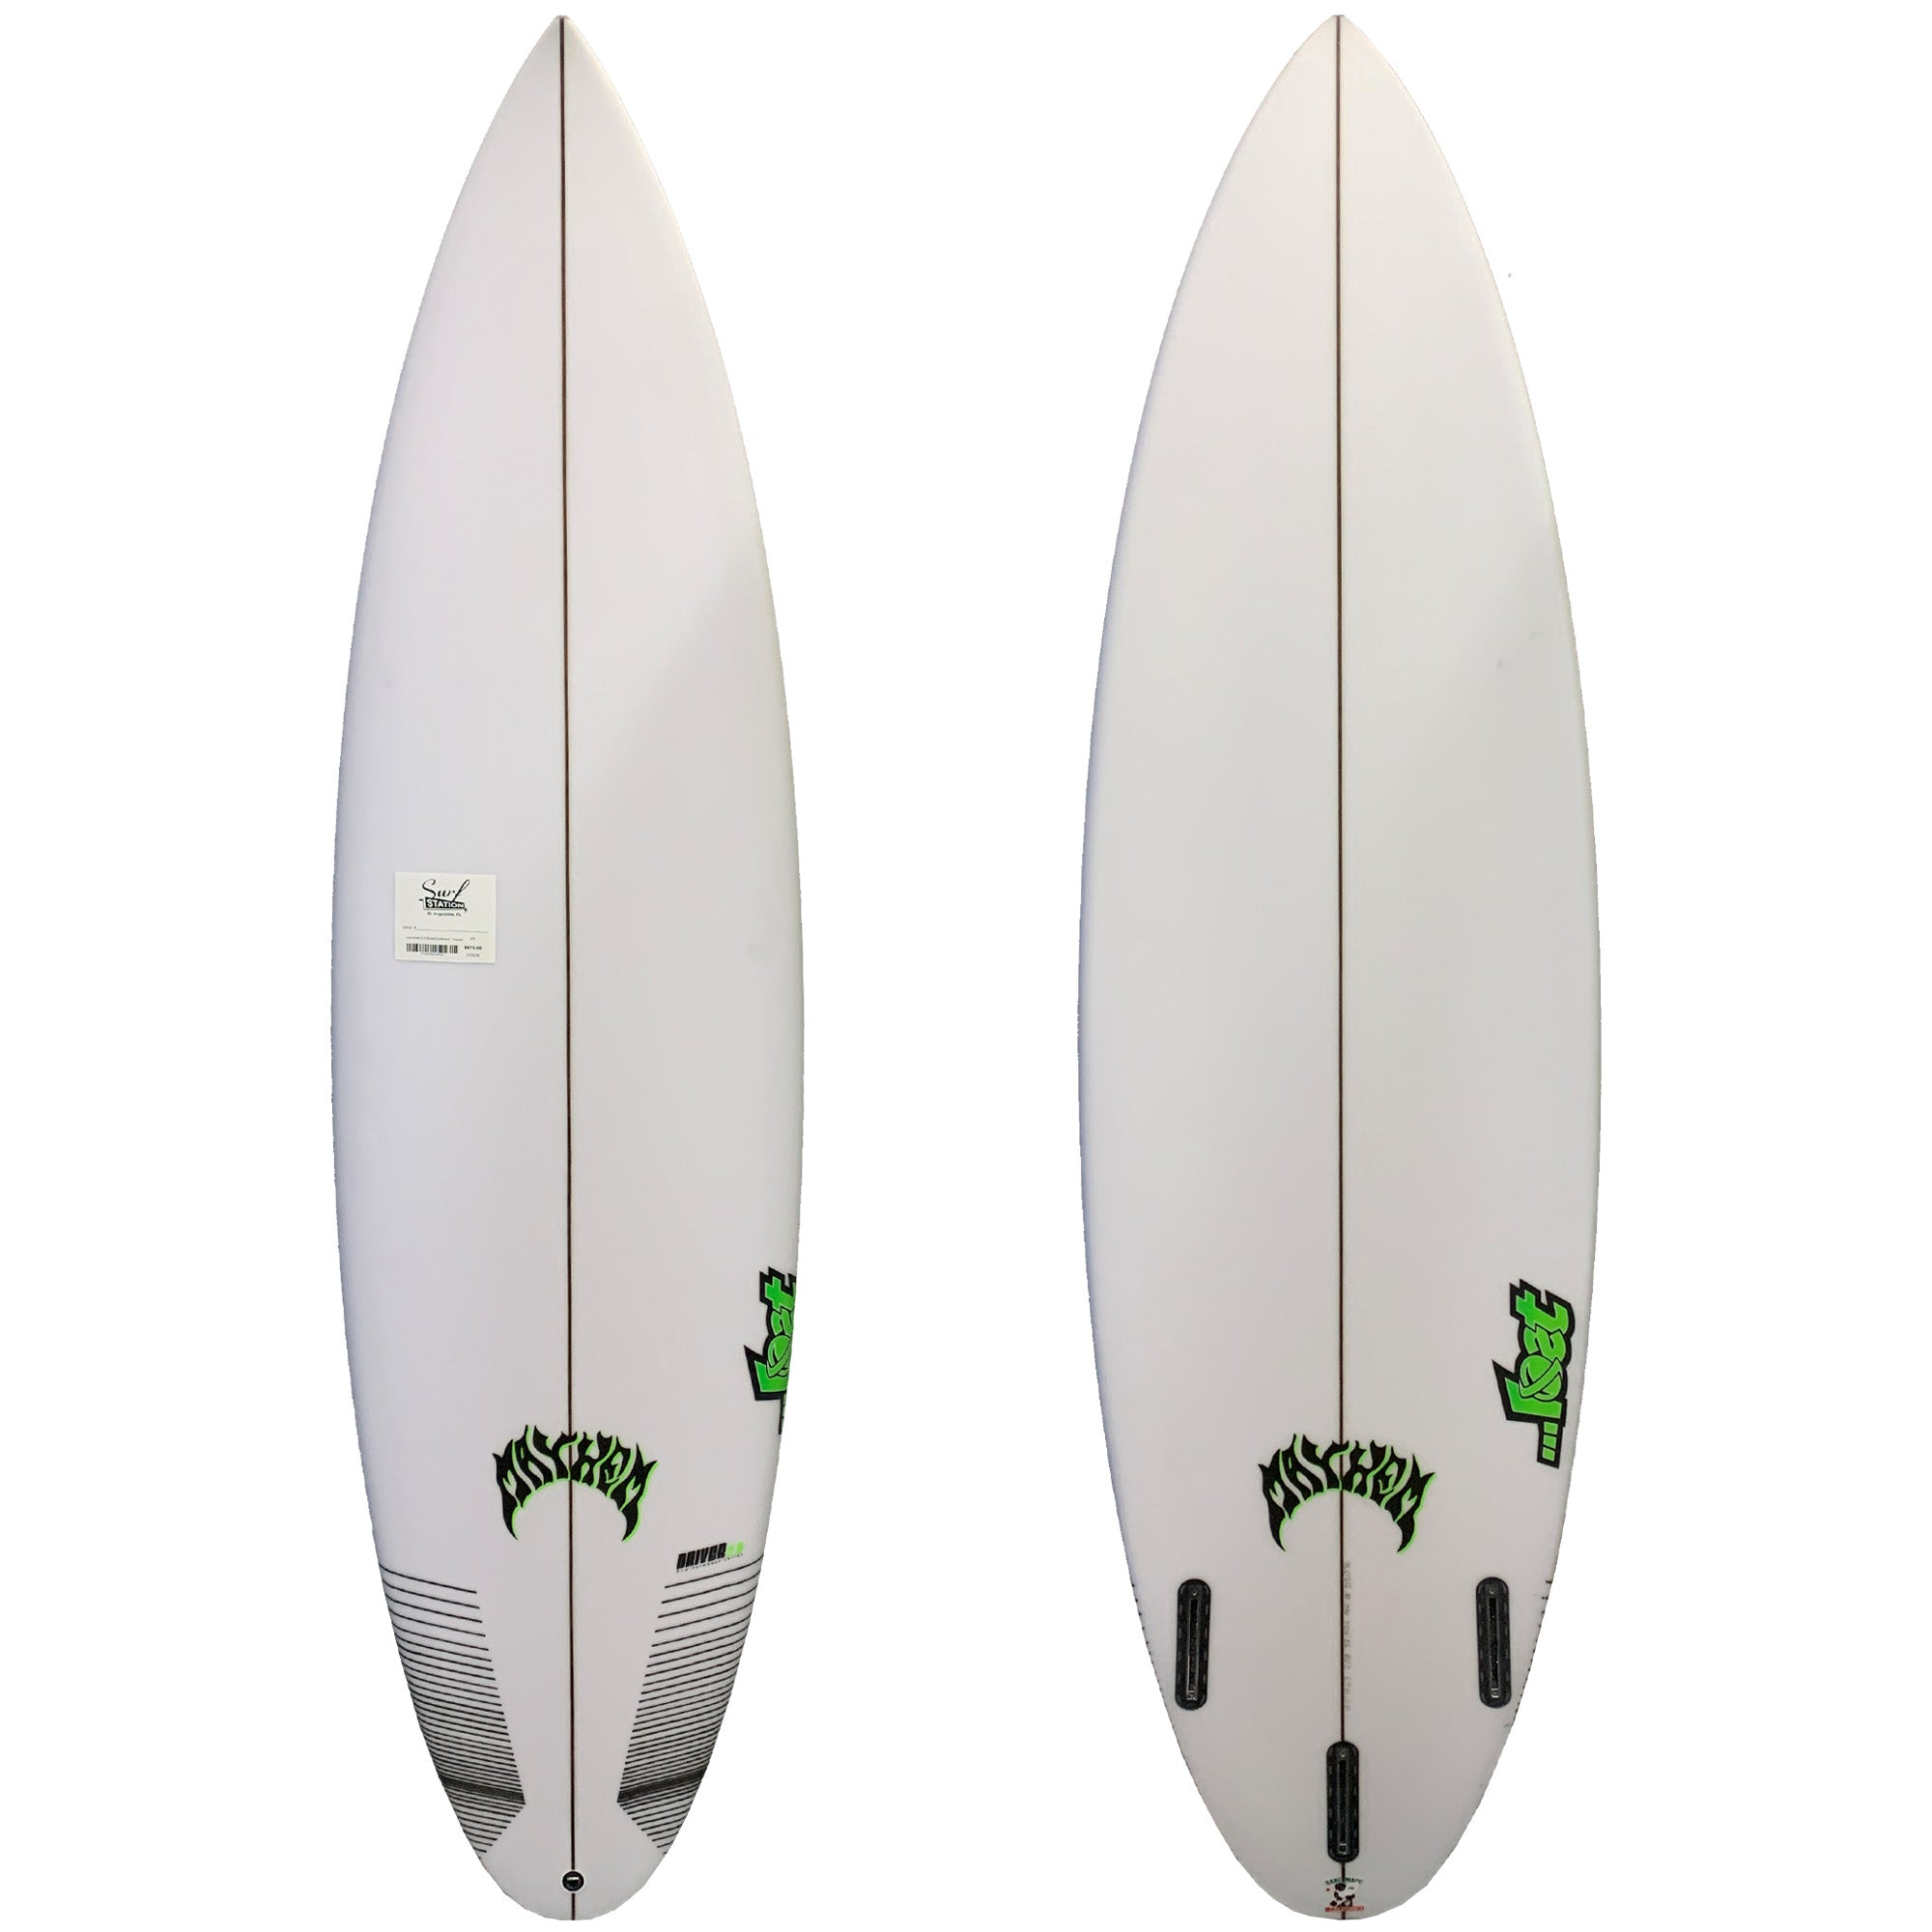 Lost Driver 2.0 Round Surfboard - Futures